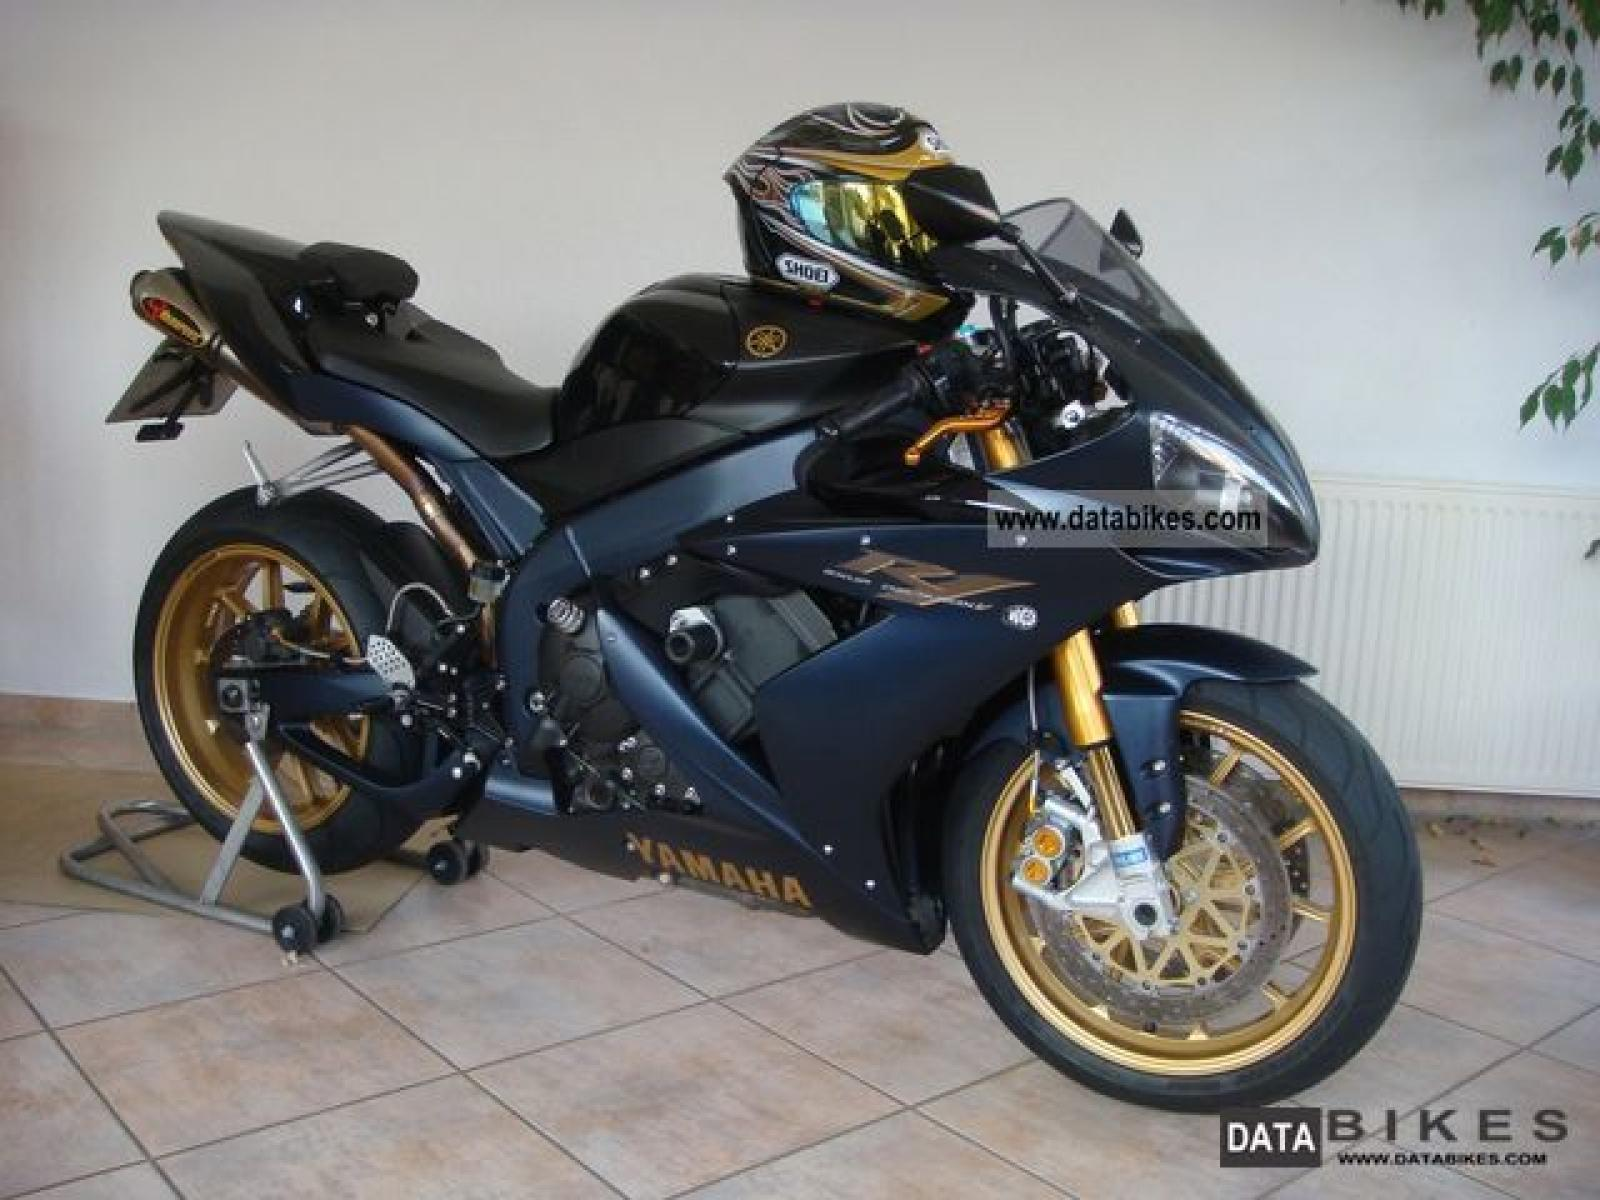 Yamaha yzf-r1sp photo - 6